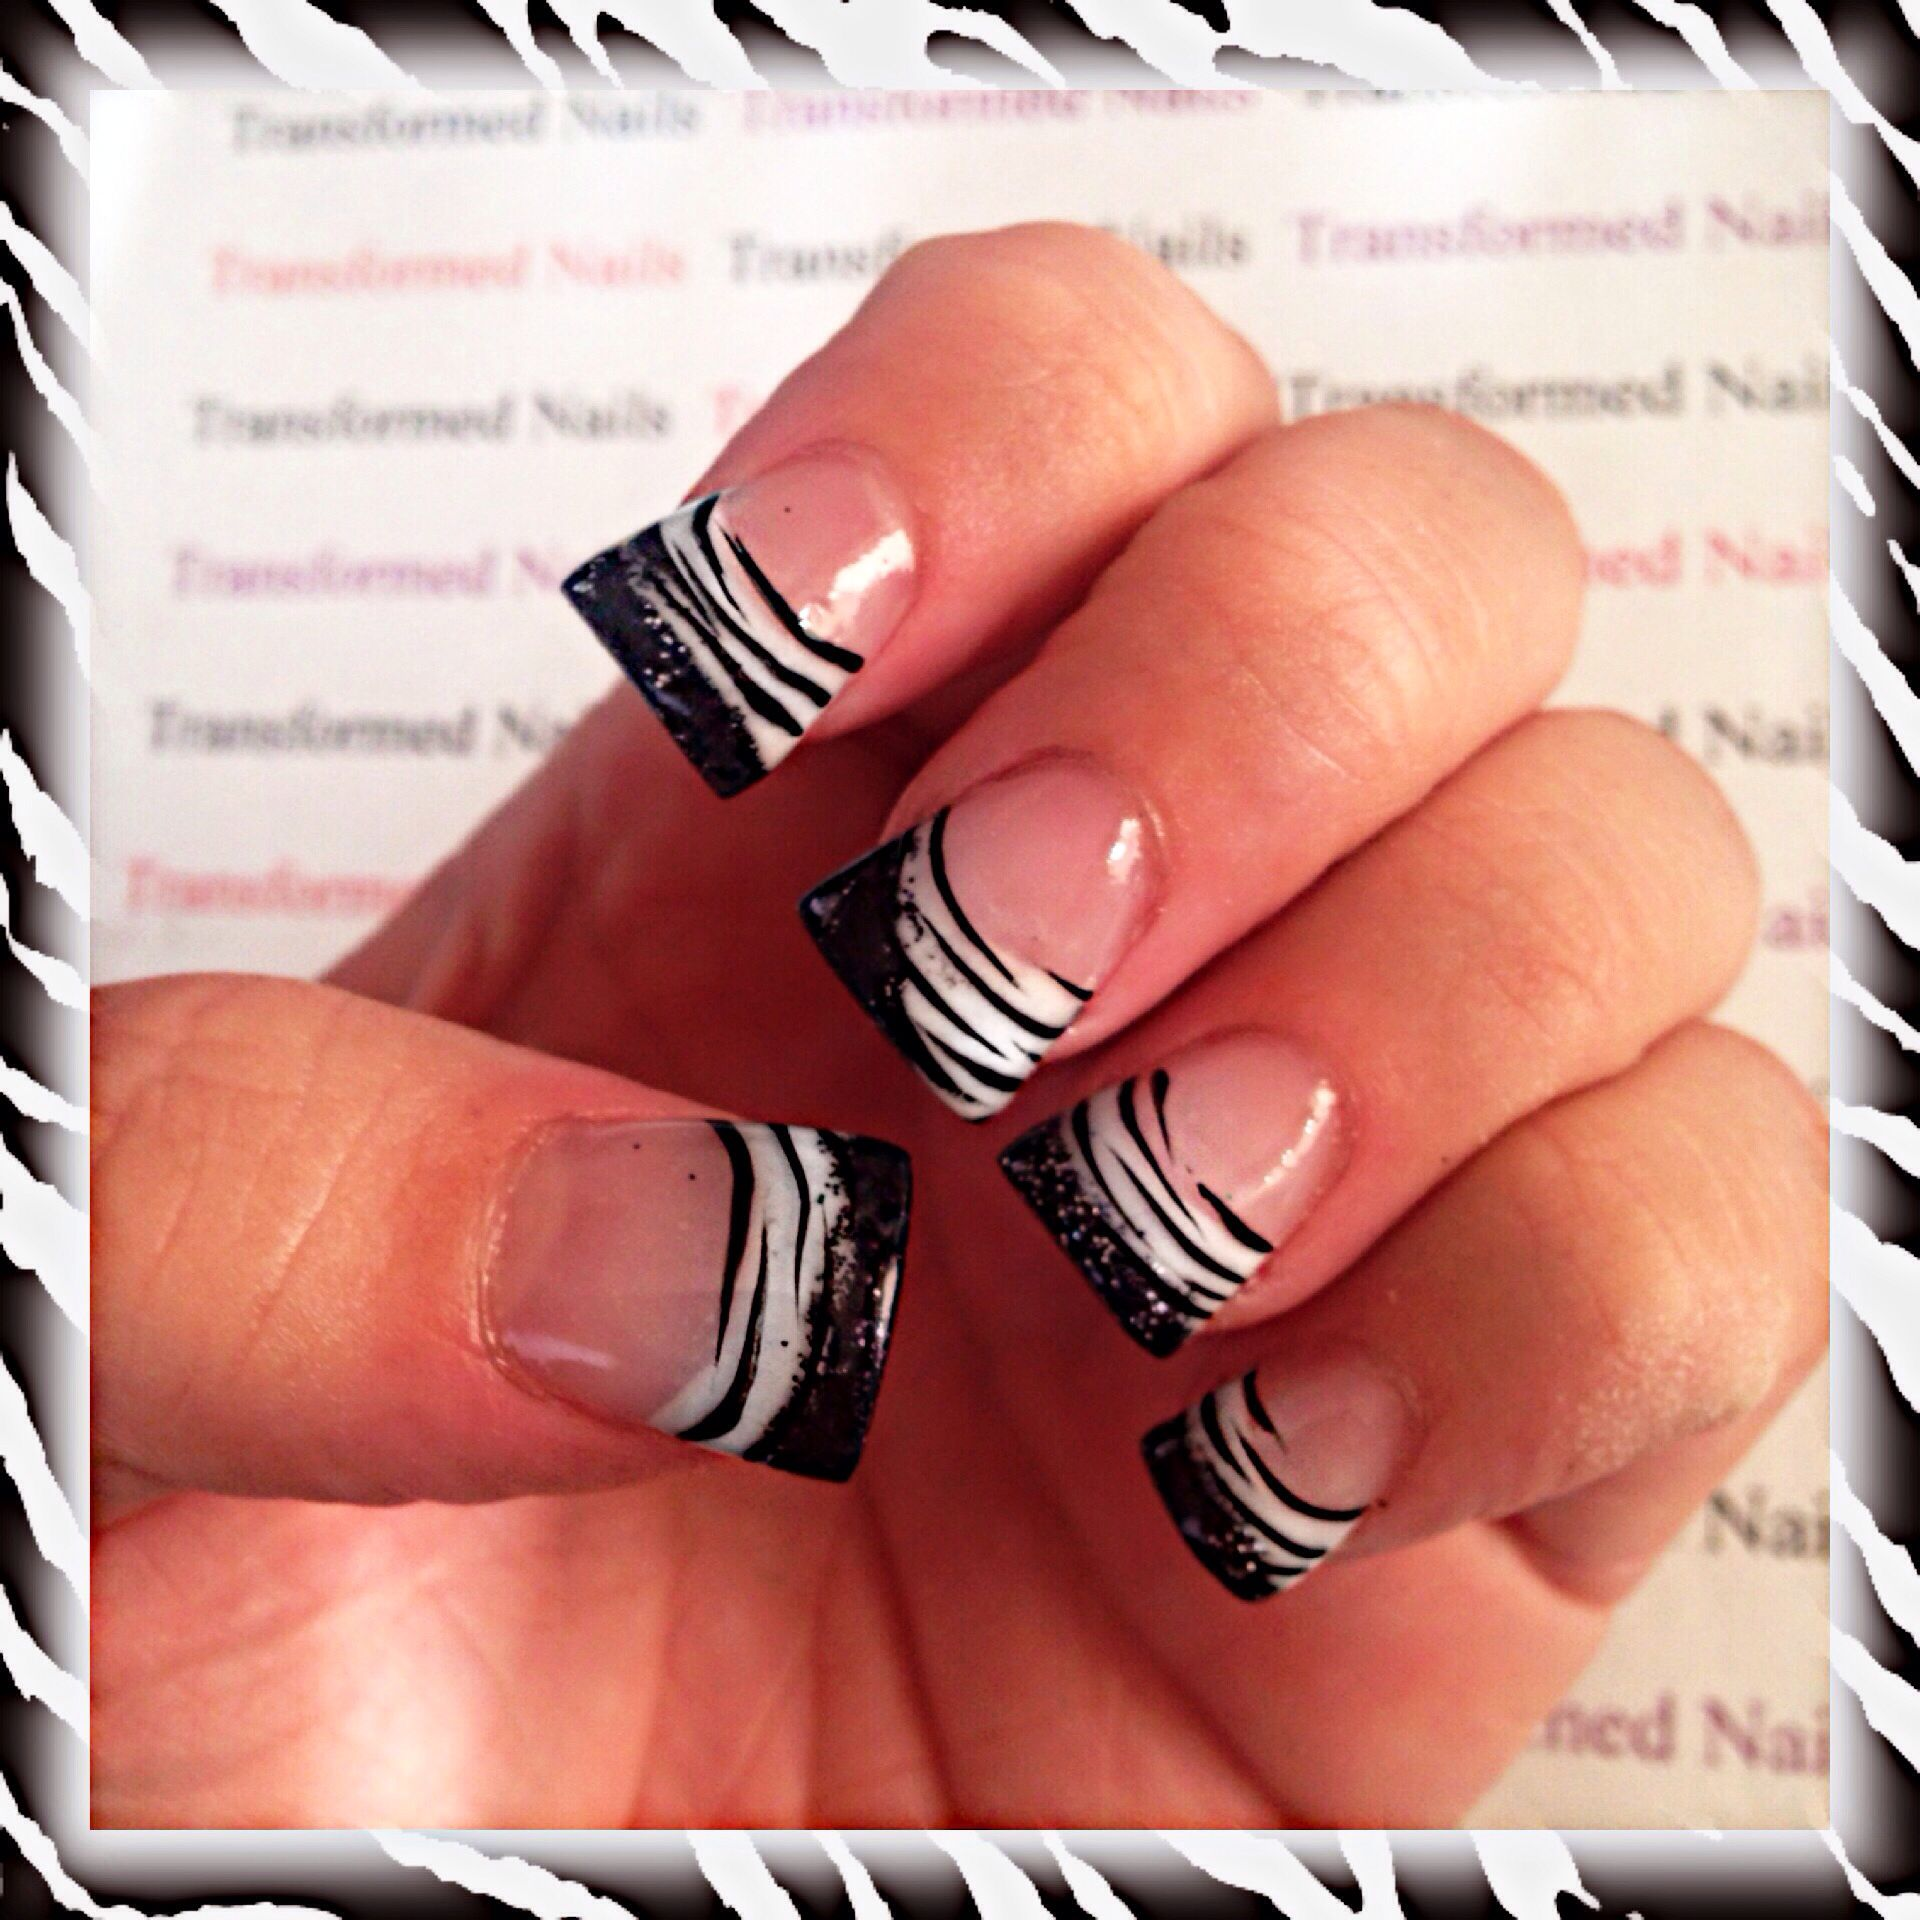 Flared acrylic nails | Decorations | Pinterest | Uñas acrilicas ...